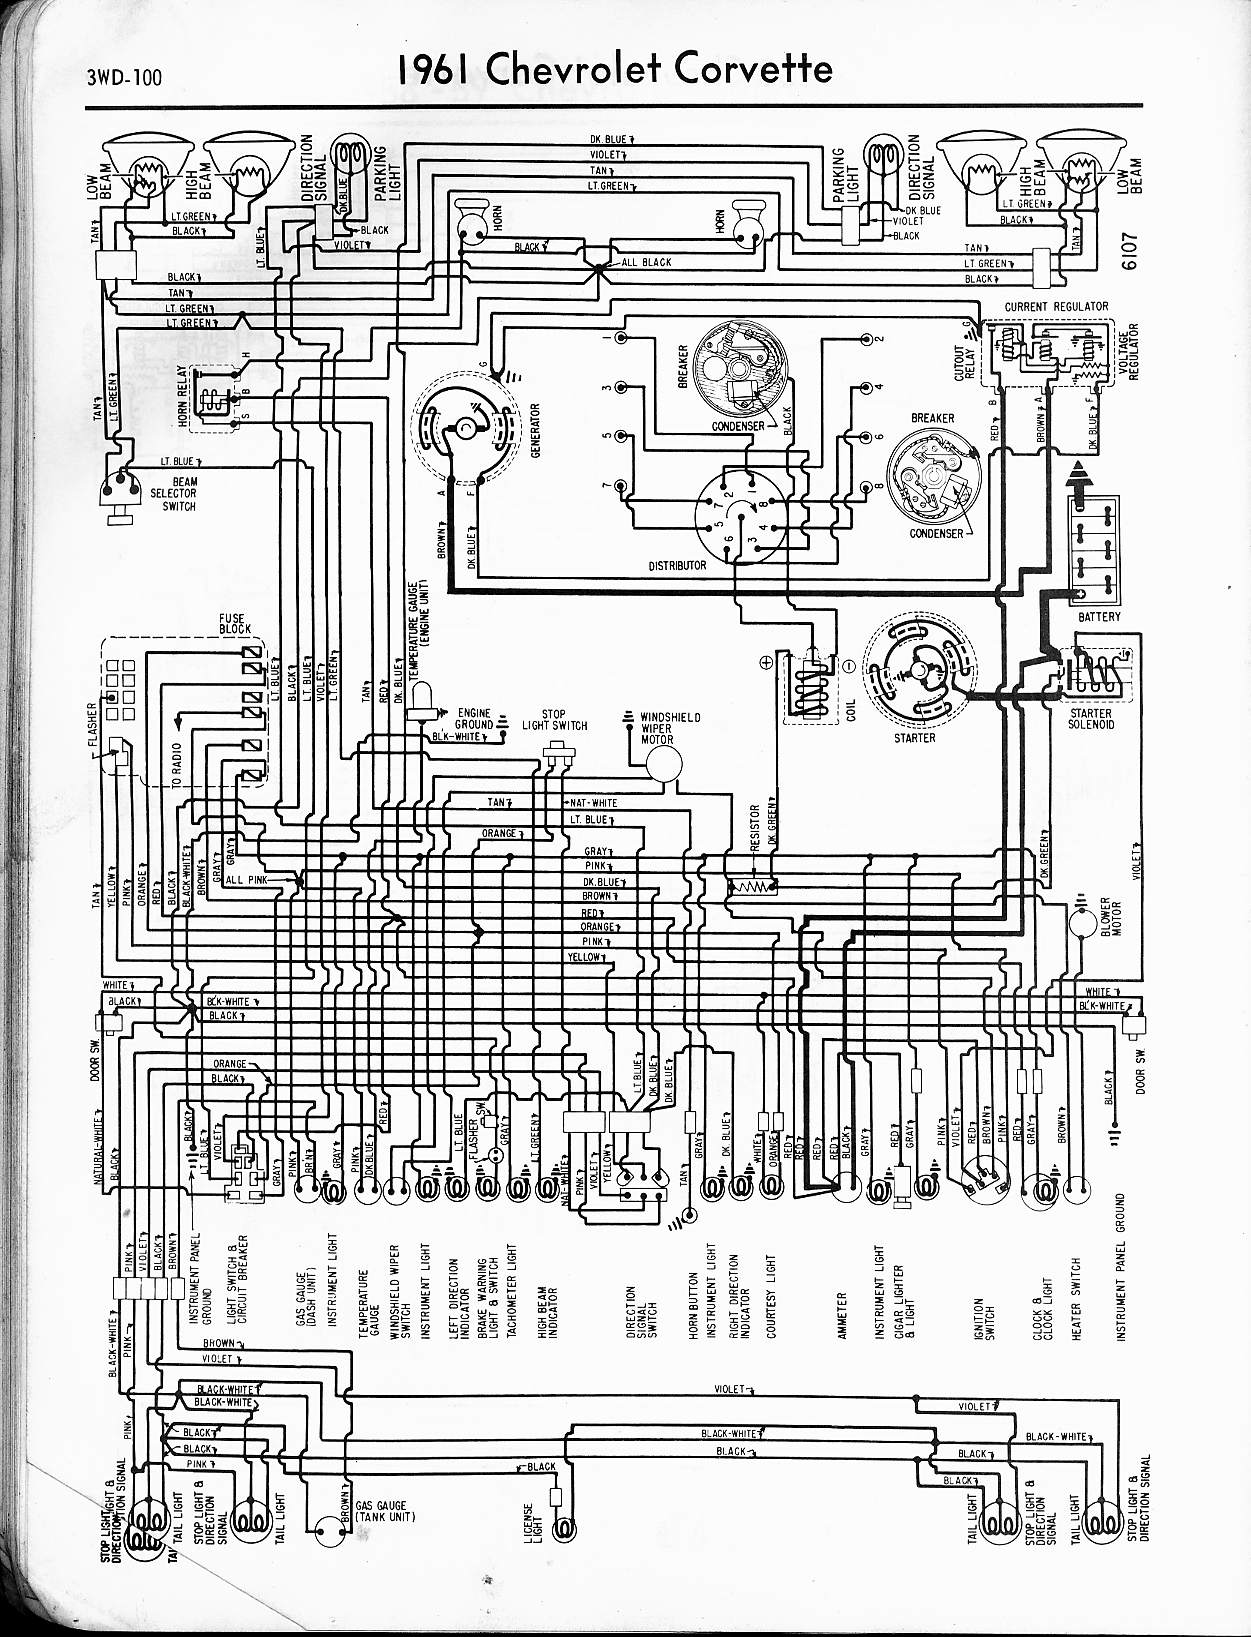 MWireChev61_3WD 100 57 65 chevy wiring diagrams 1960 corvette wiring diagram at fashall.co